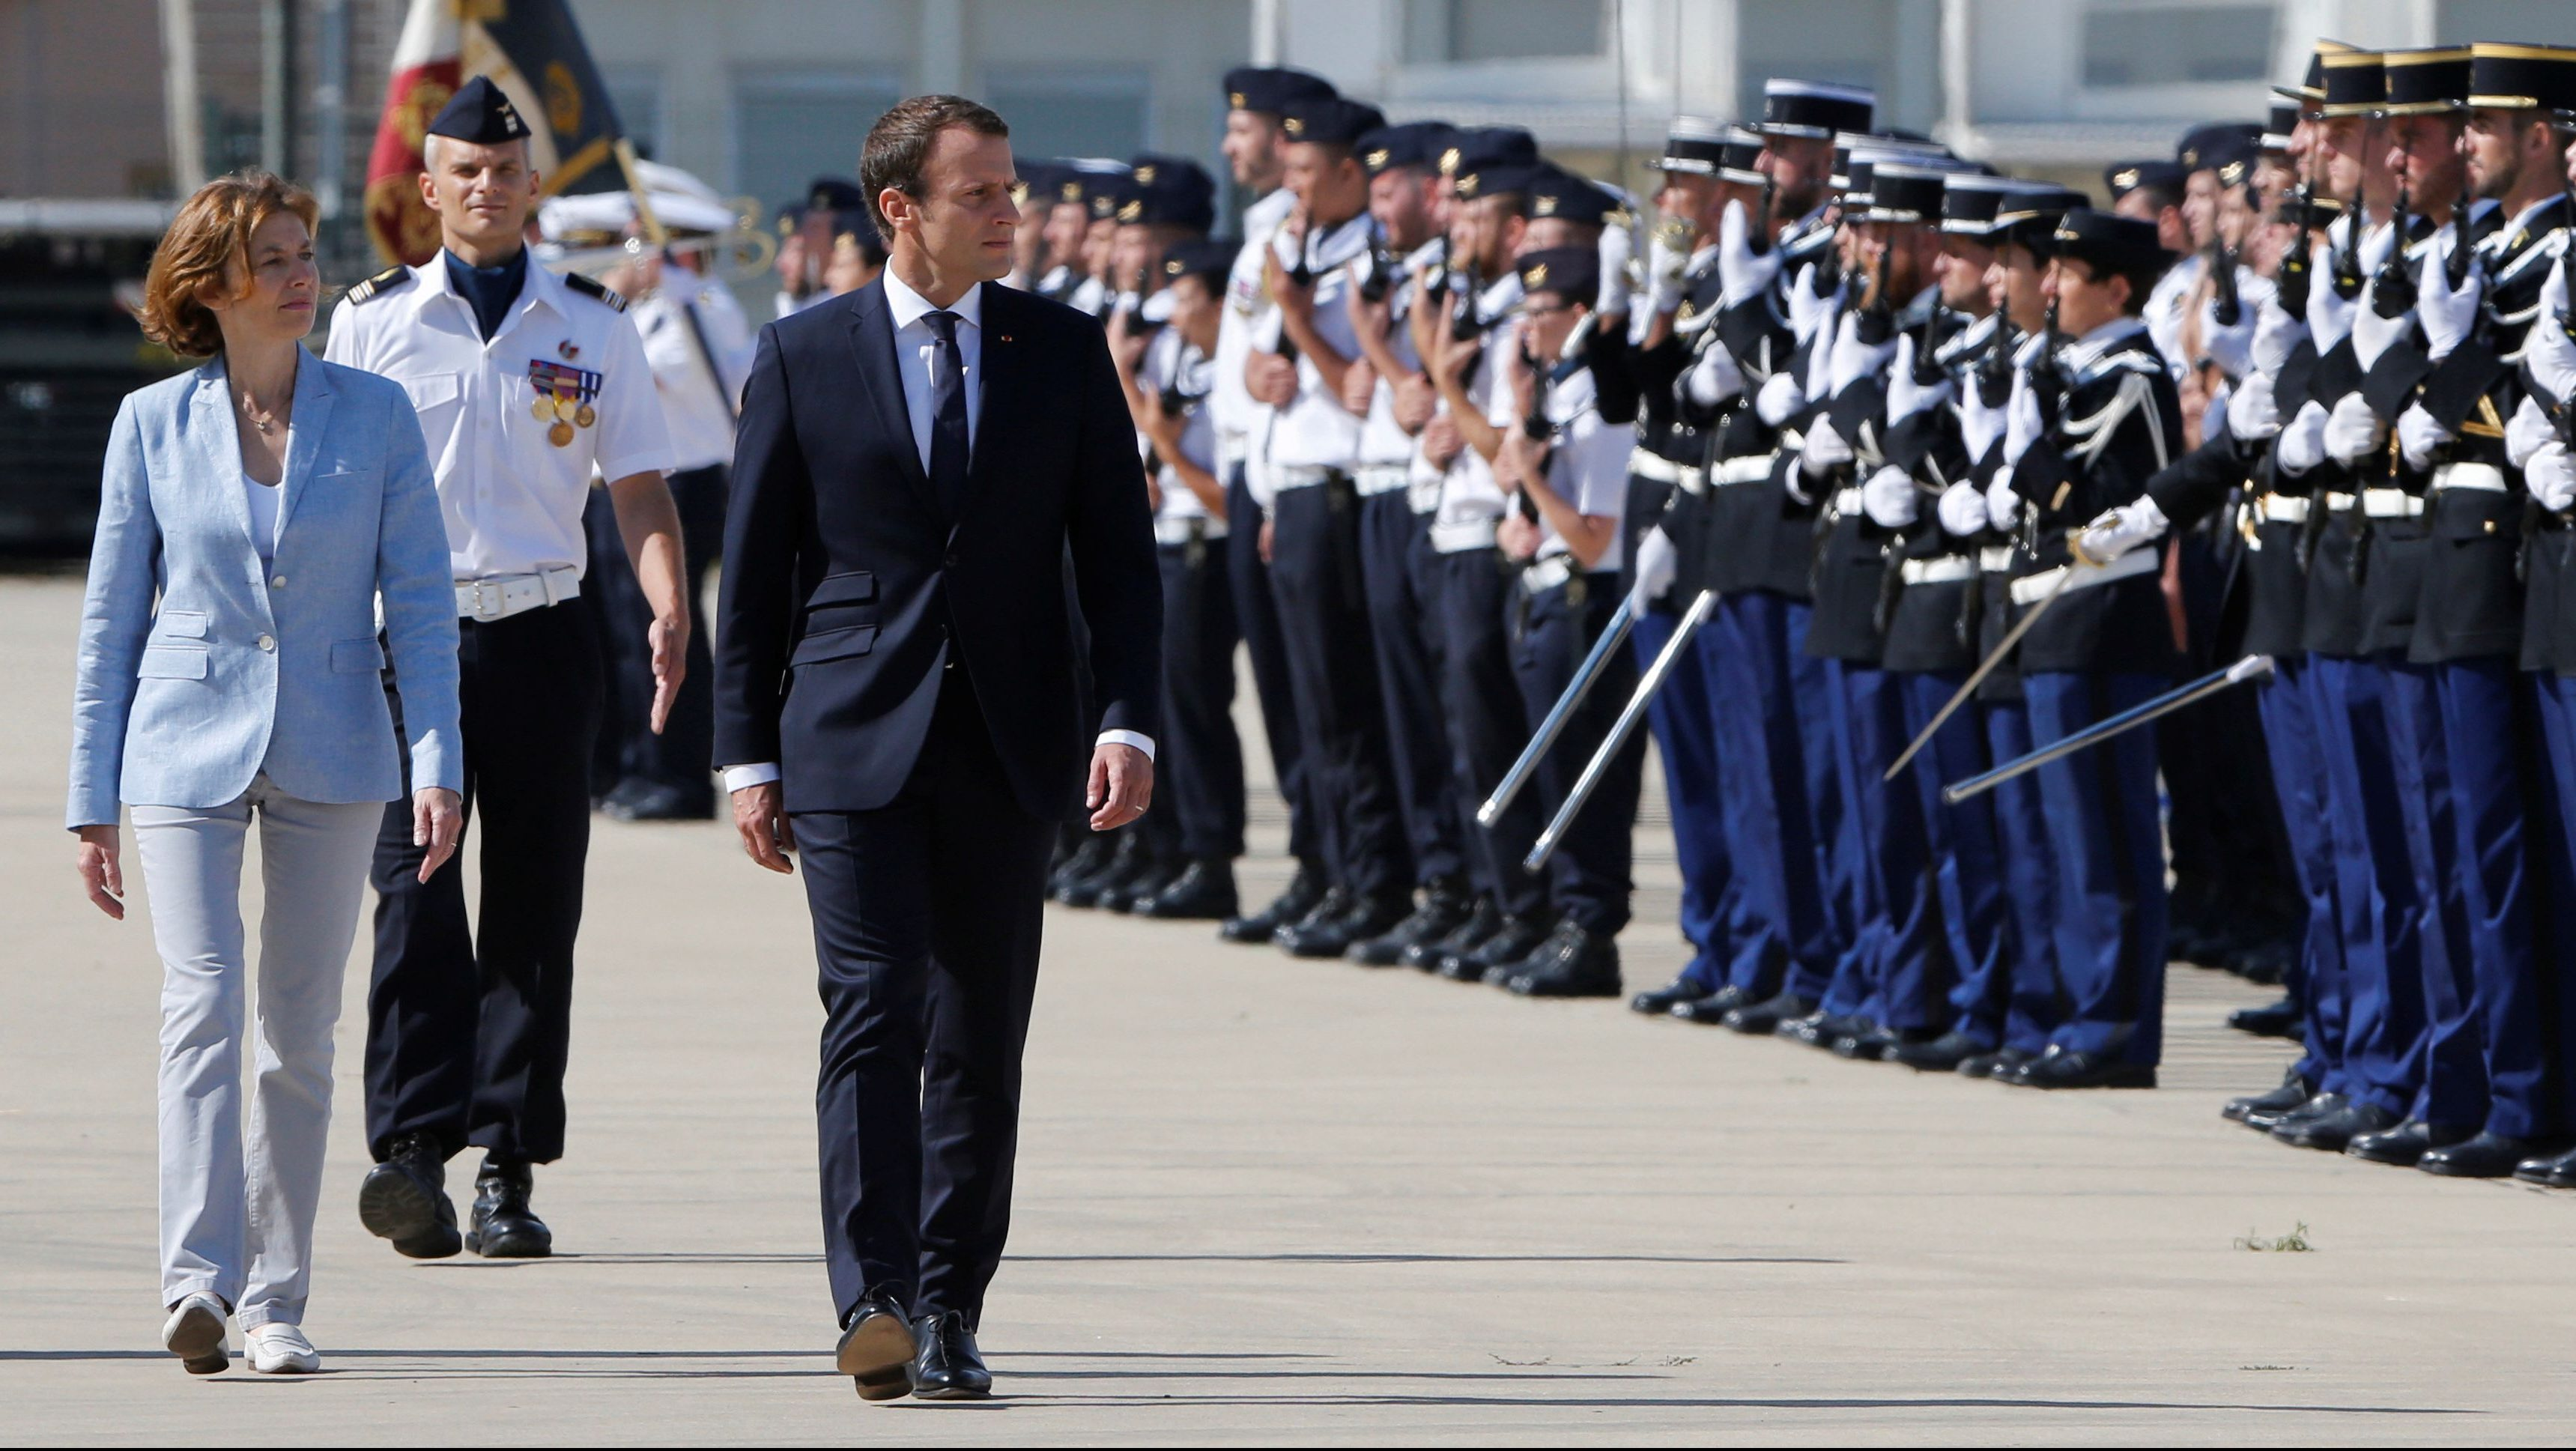 French President Emmanuel Macron reviews troops as he arrives at the military base in Istres